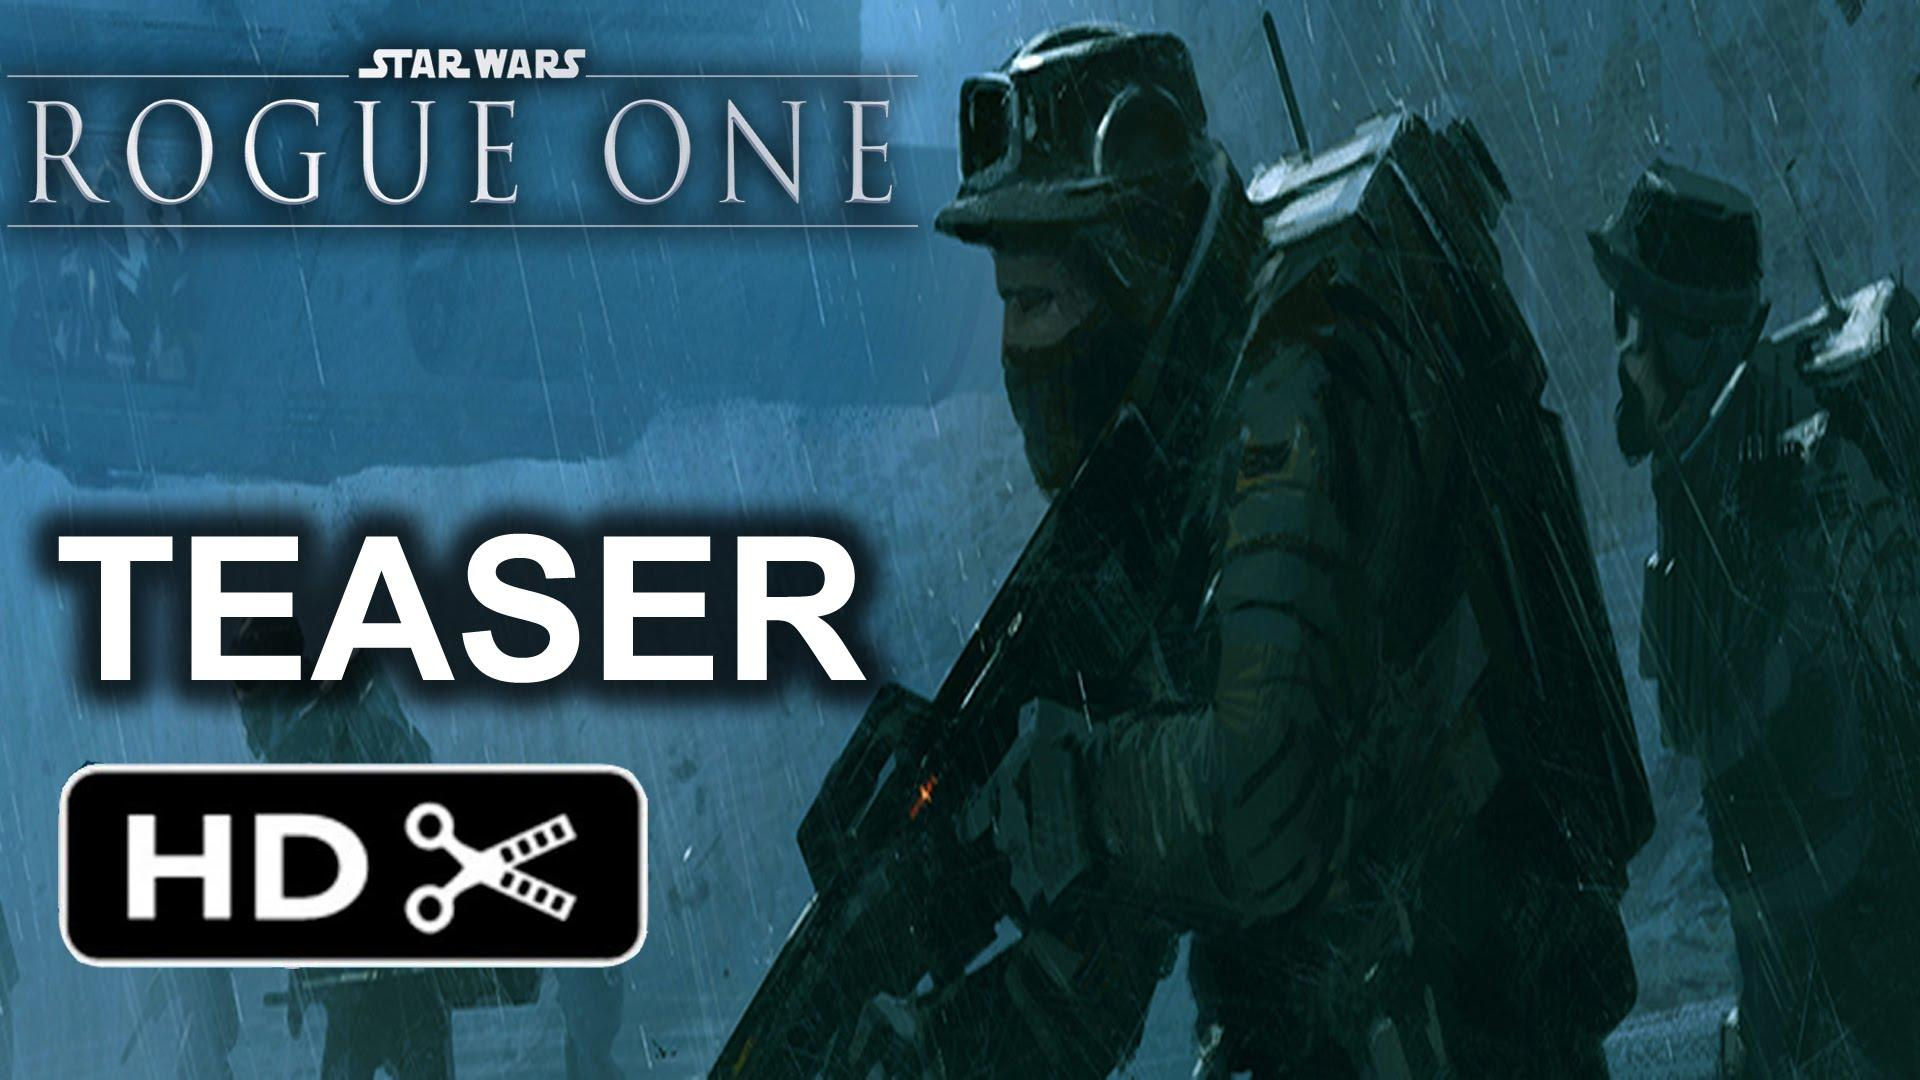 Trending Video: FAKE Trailer For Next Star Wars Movie, 'Rogue One'